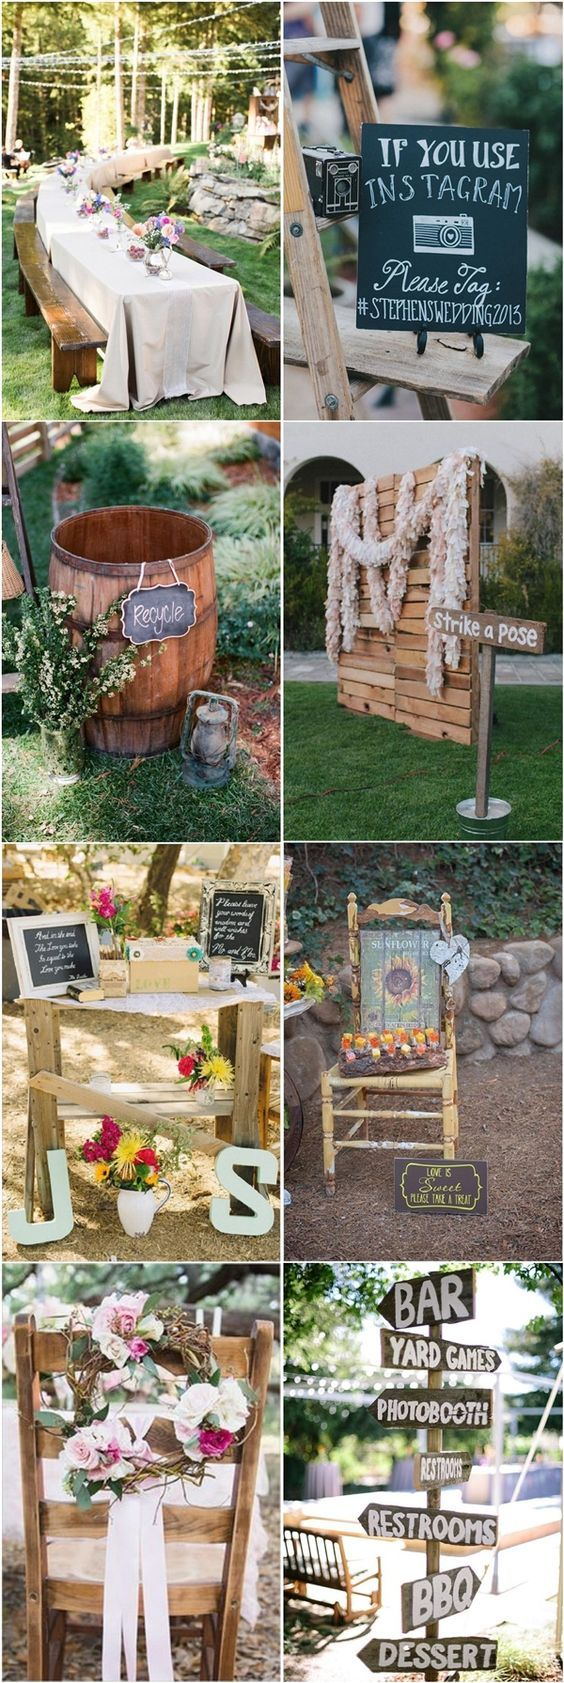 35 Rustic Backyard Wedding Decoration Ideas is part of Backyard wedding decorations - Planning a backyard soiree  Let's see how to decorate it! We've already told you how to organize a backyard wedding reception, now have a look what to add  Use the trees around for decor hang photos, lights and signs